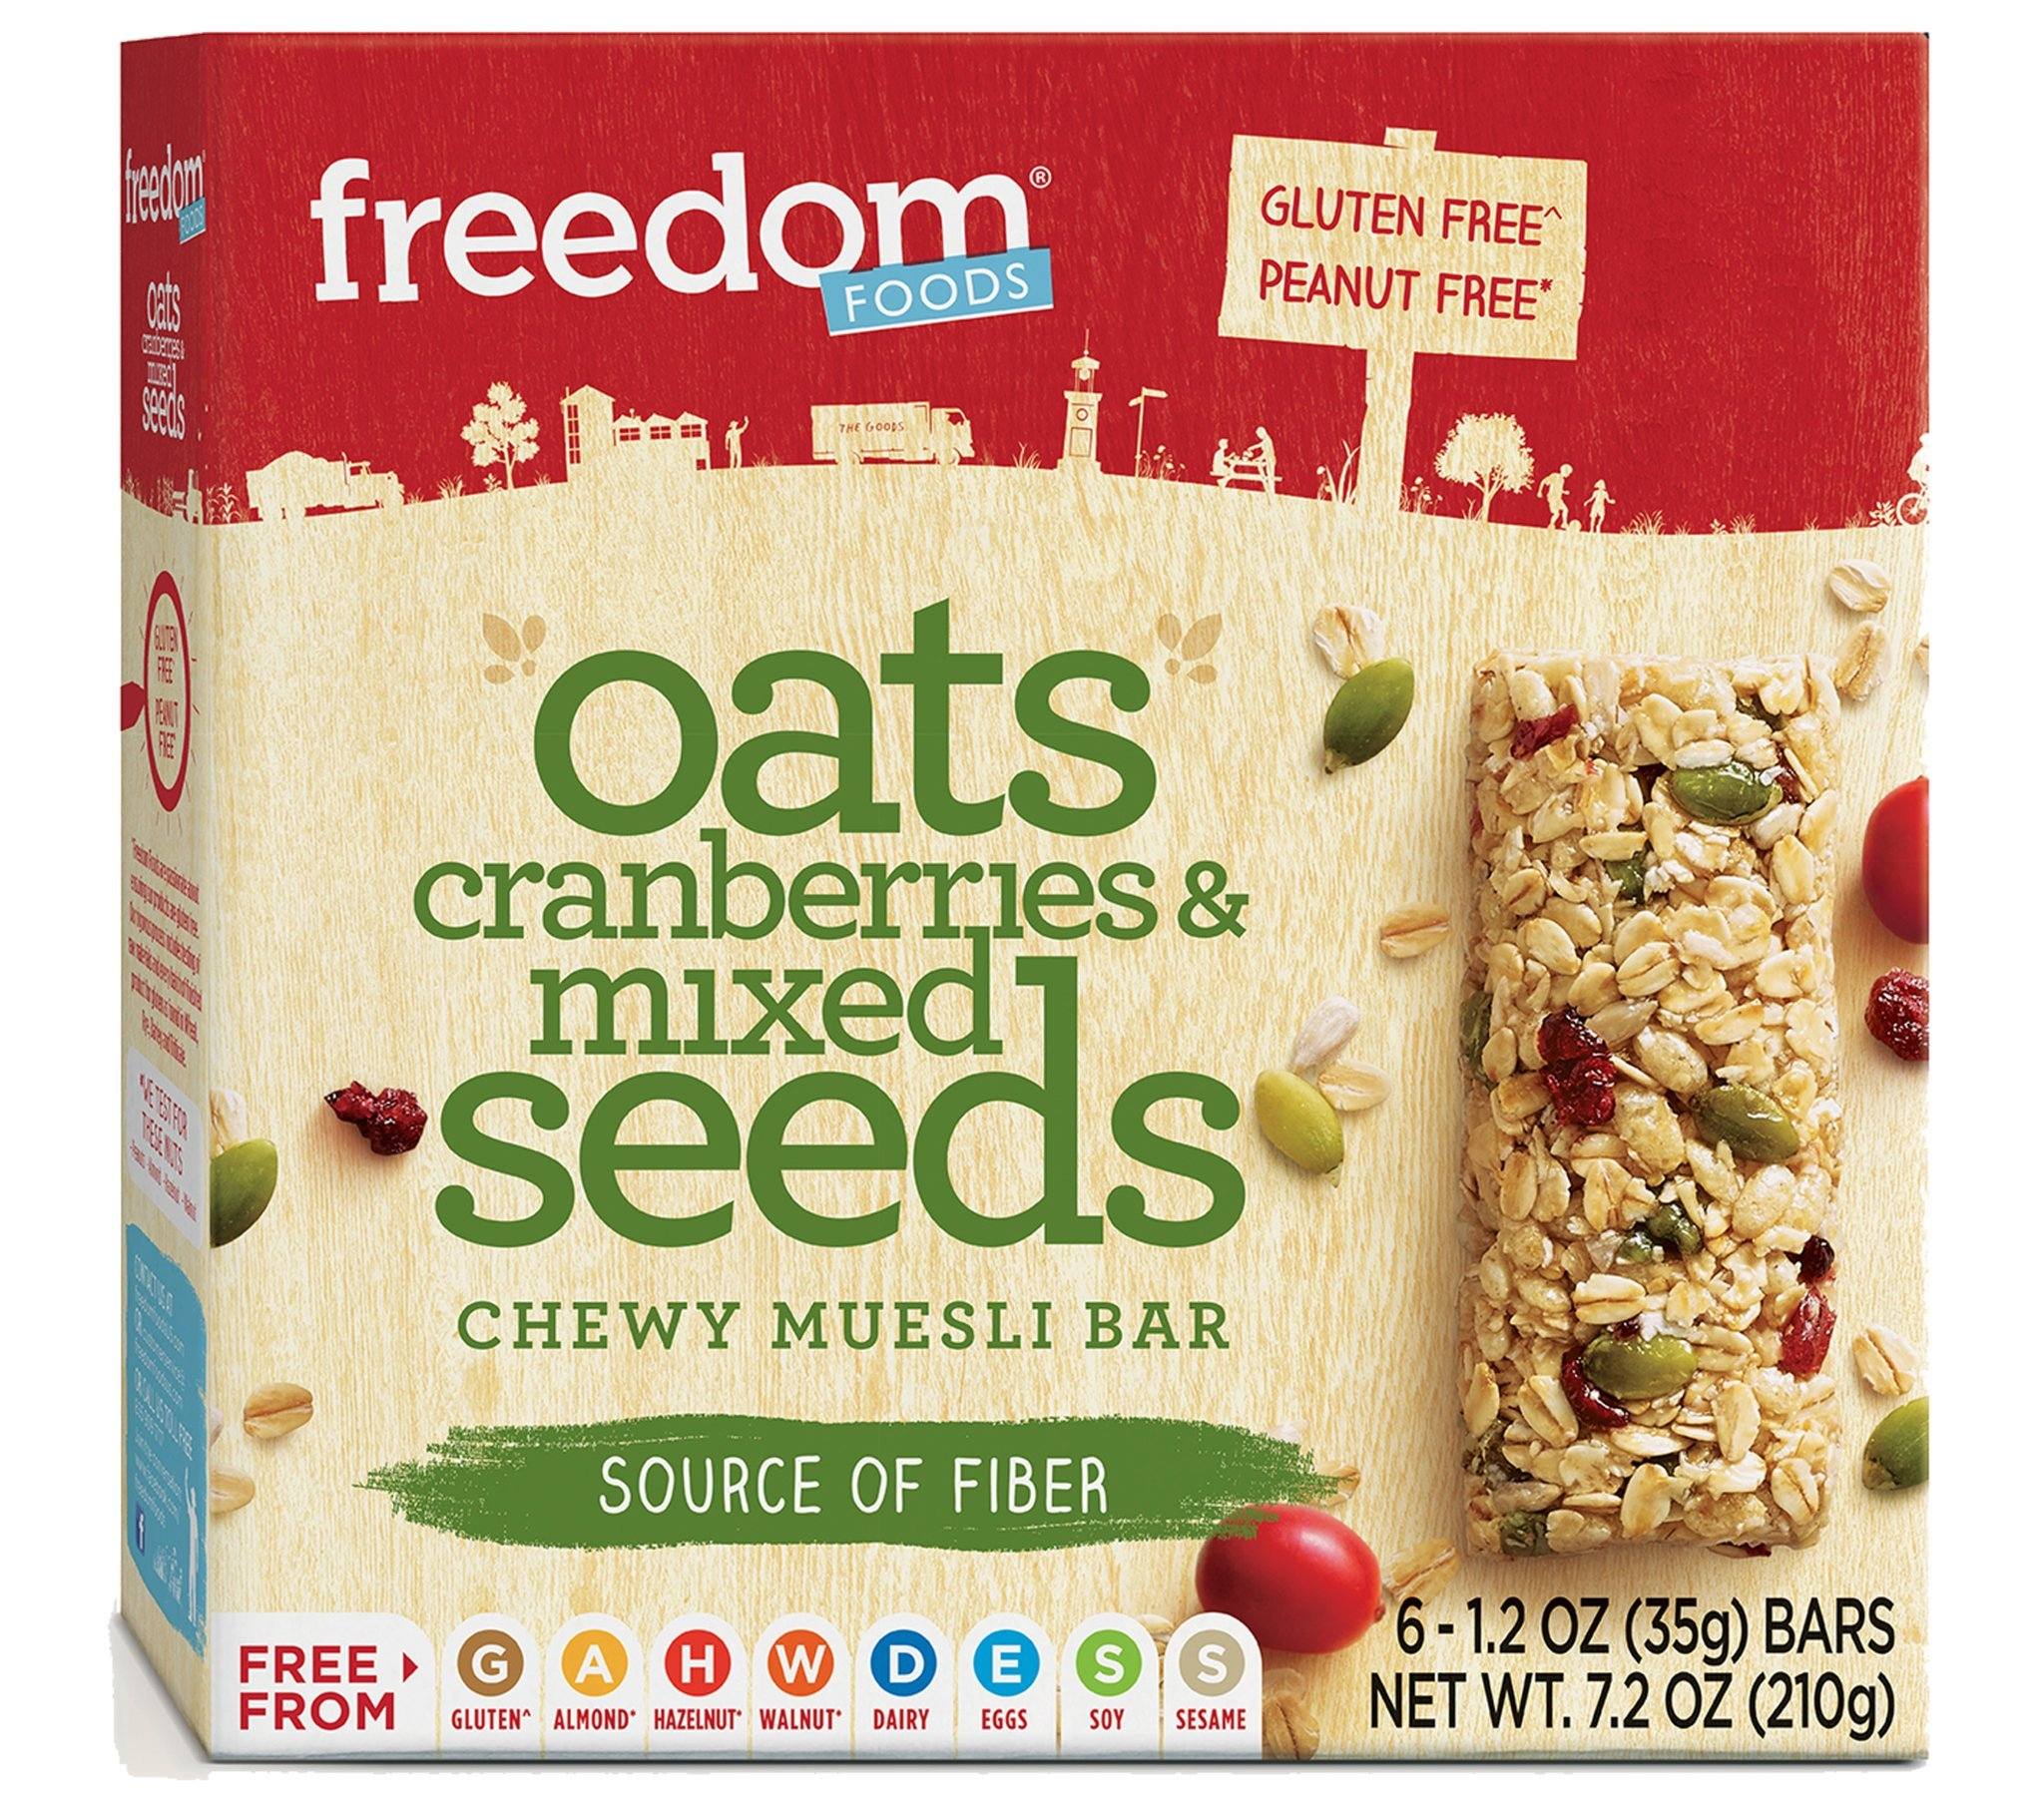 Peanut Free Oats Cranberries & Mixed Seeds Chewy Muesli Bar 7.2oz by Freedom Foods